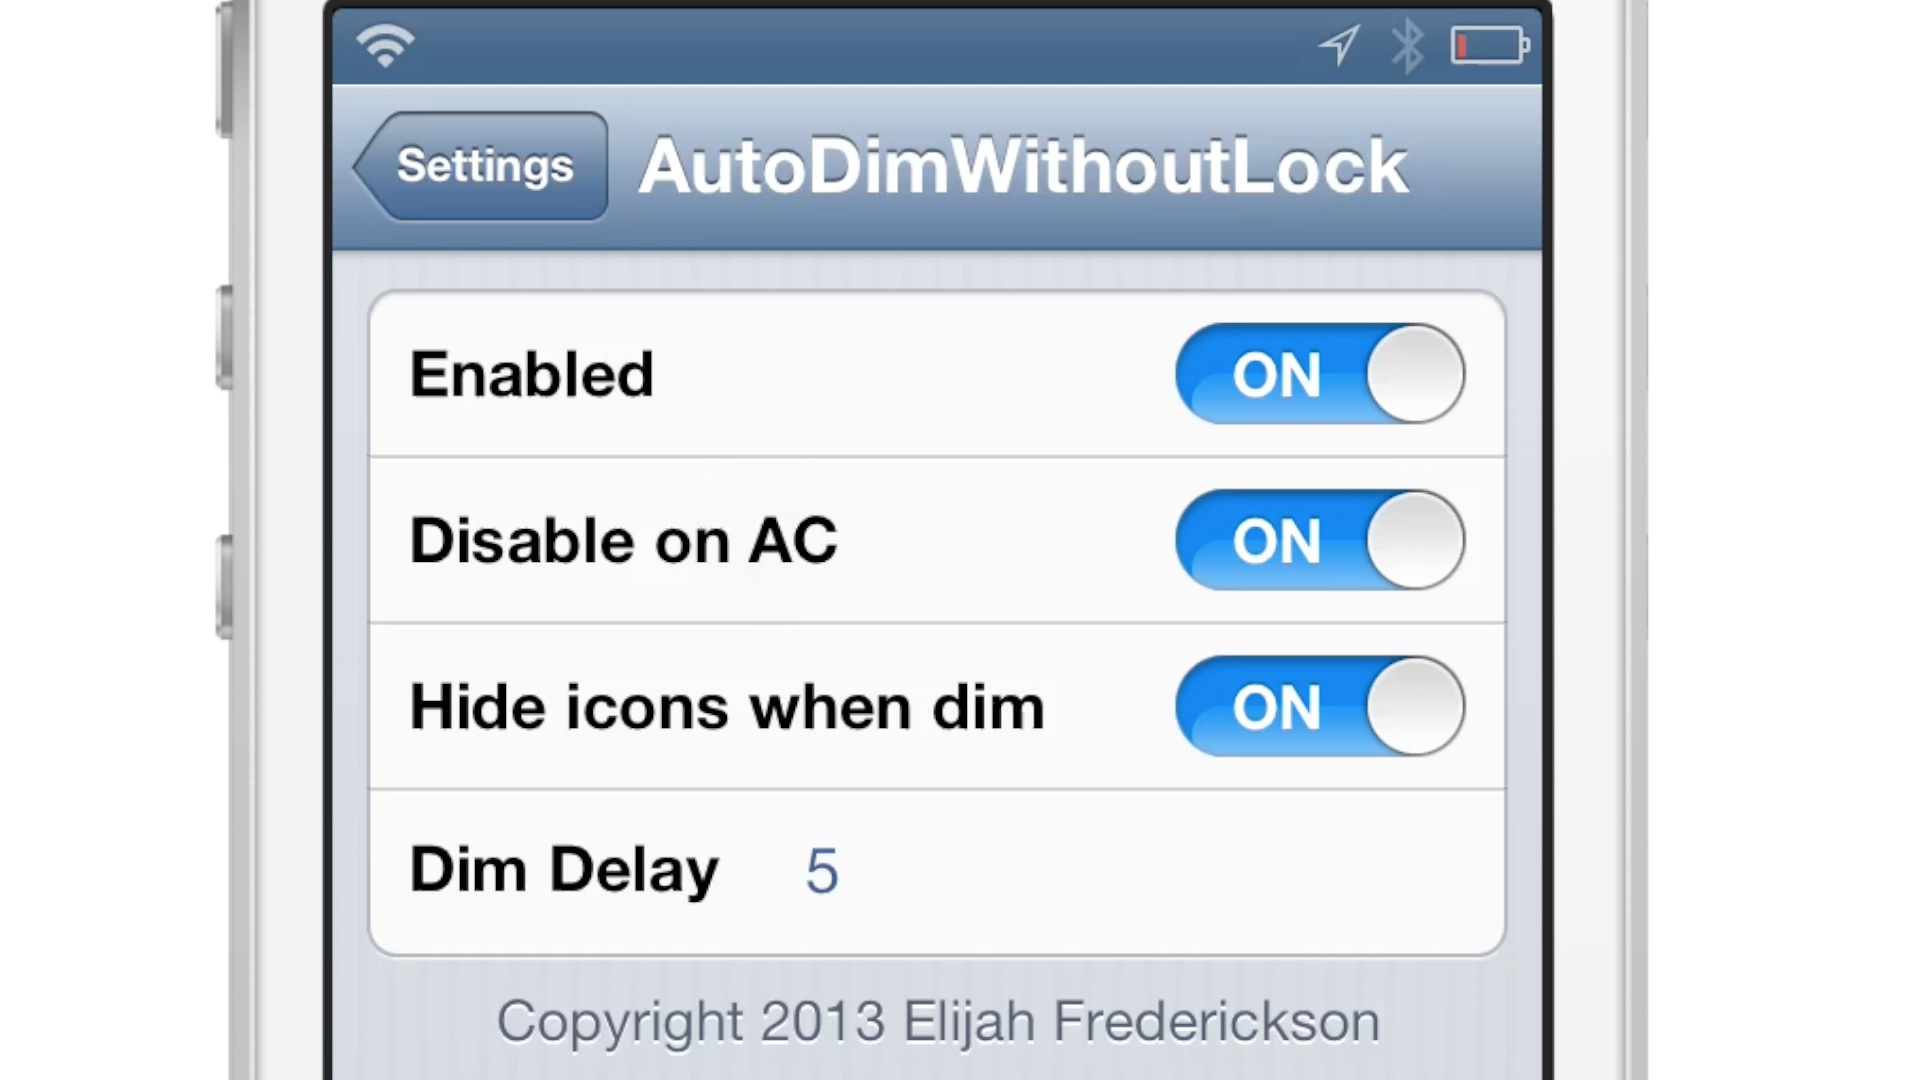 AutoDimWithoutLock